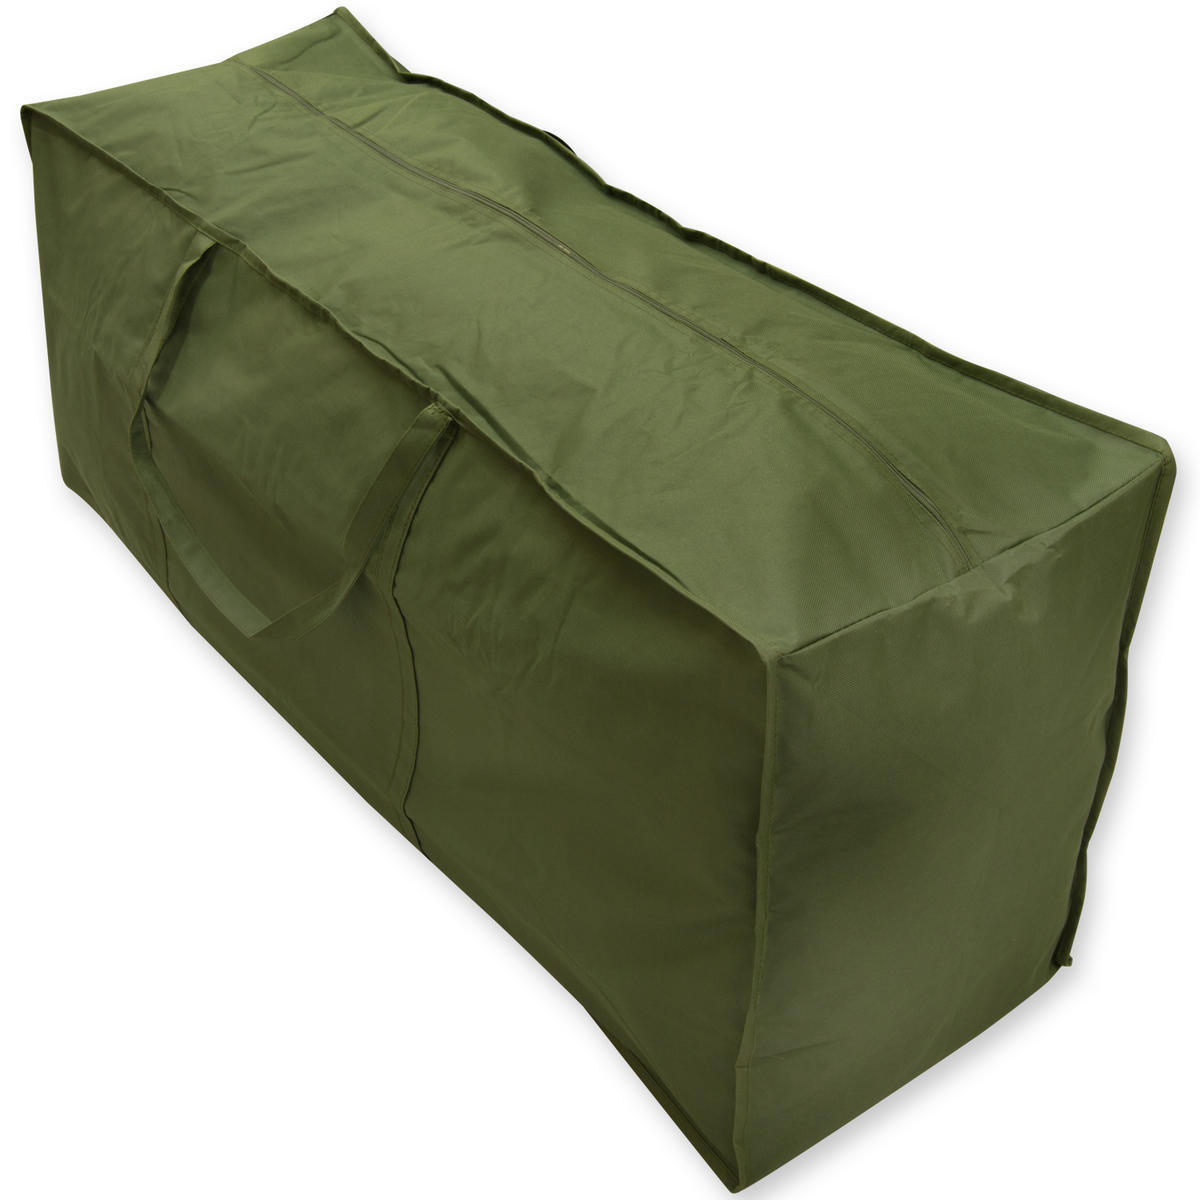 Oxbridge Furniture Cushion Storage Bag